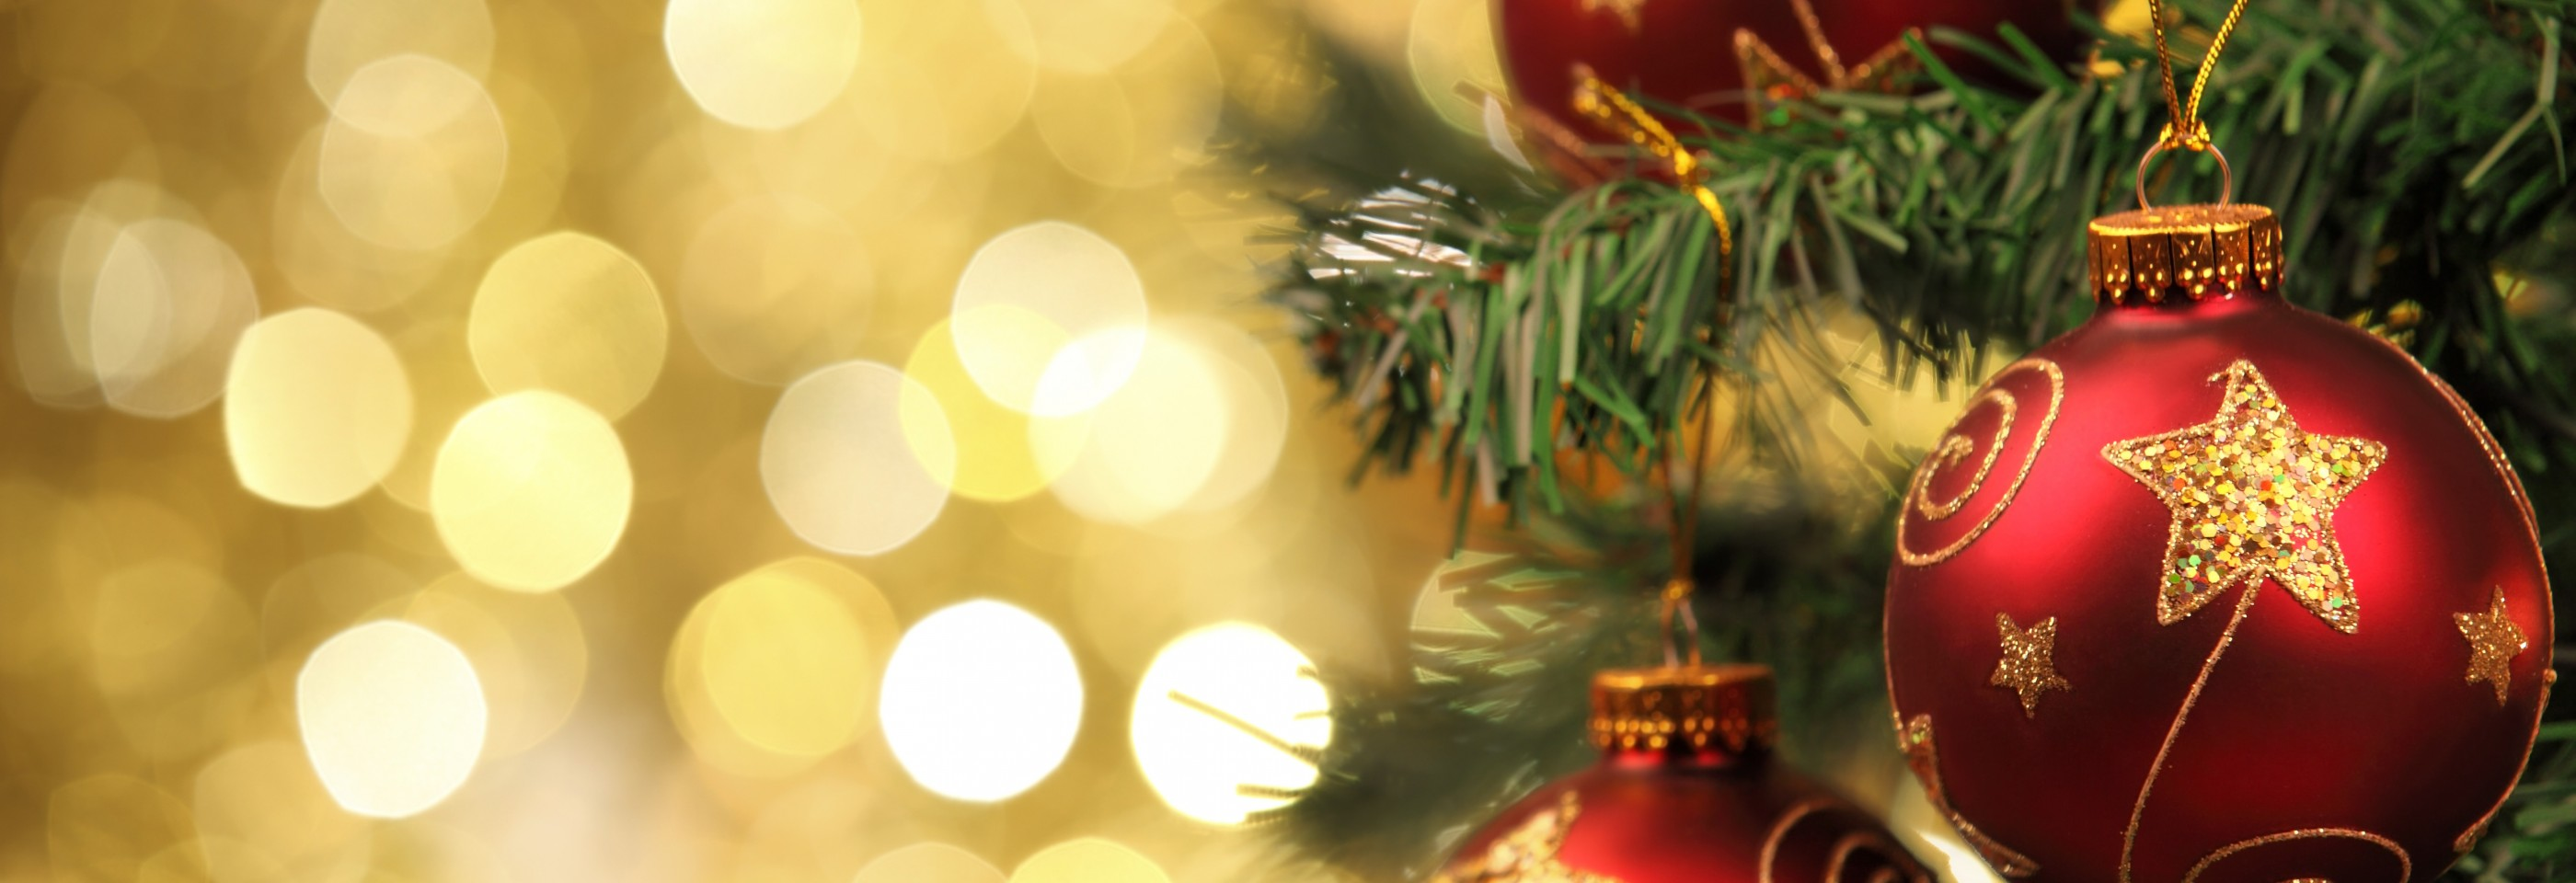 Tips for Managing Multiple Sclerosis During the Holidays